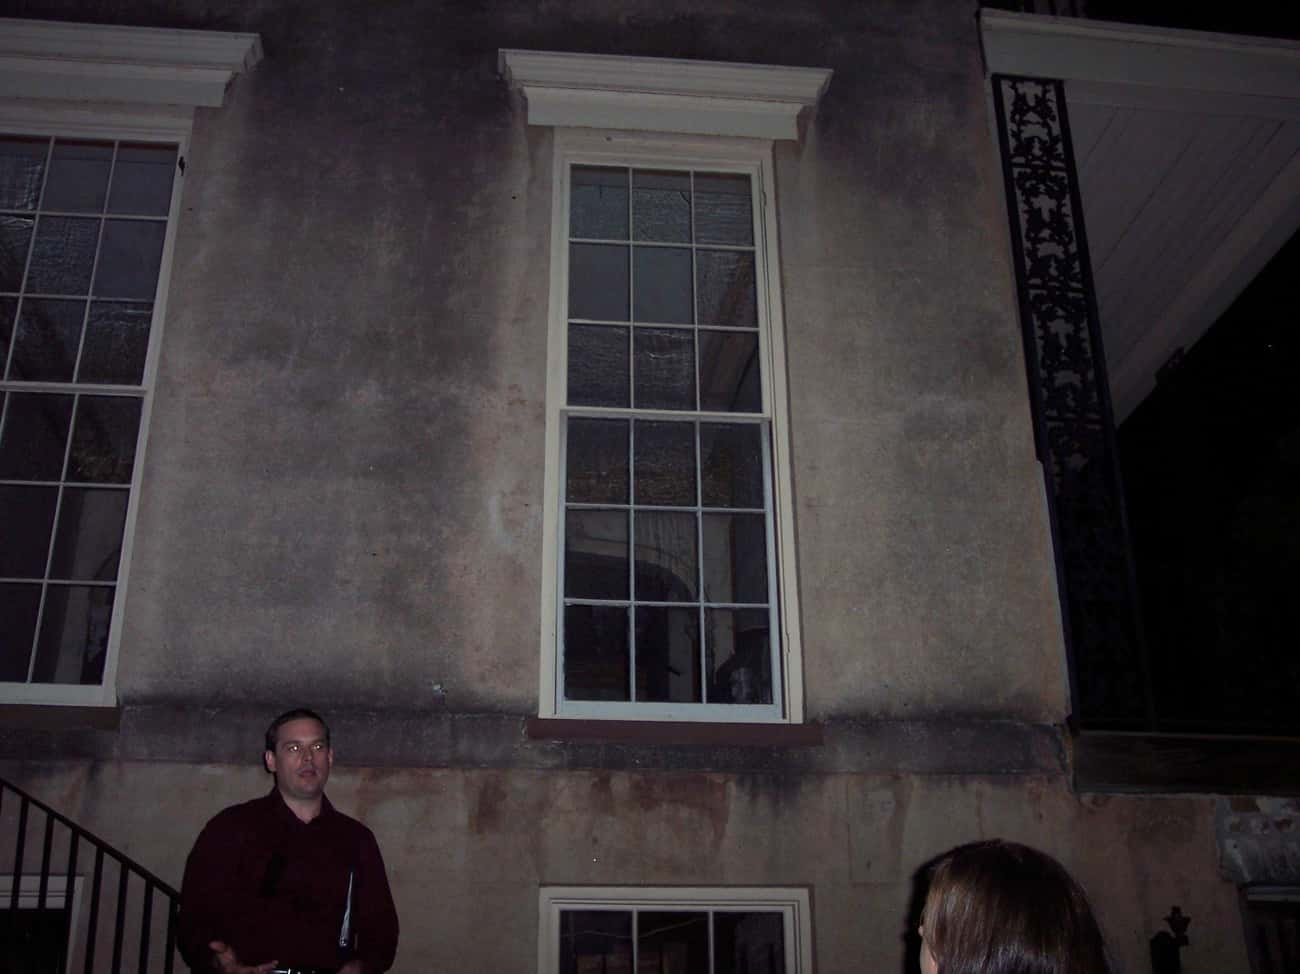 Little Girl In The Window is listed (or ranked) 1 on the list More Haunting Photos That Suggest Ghosts Are Real